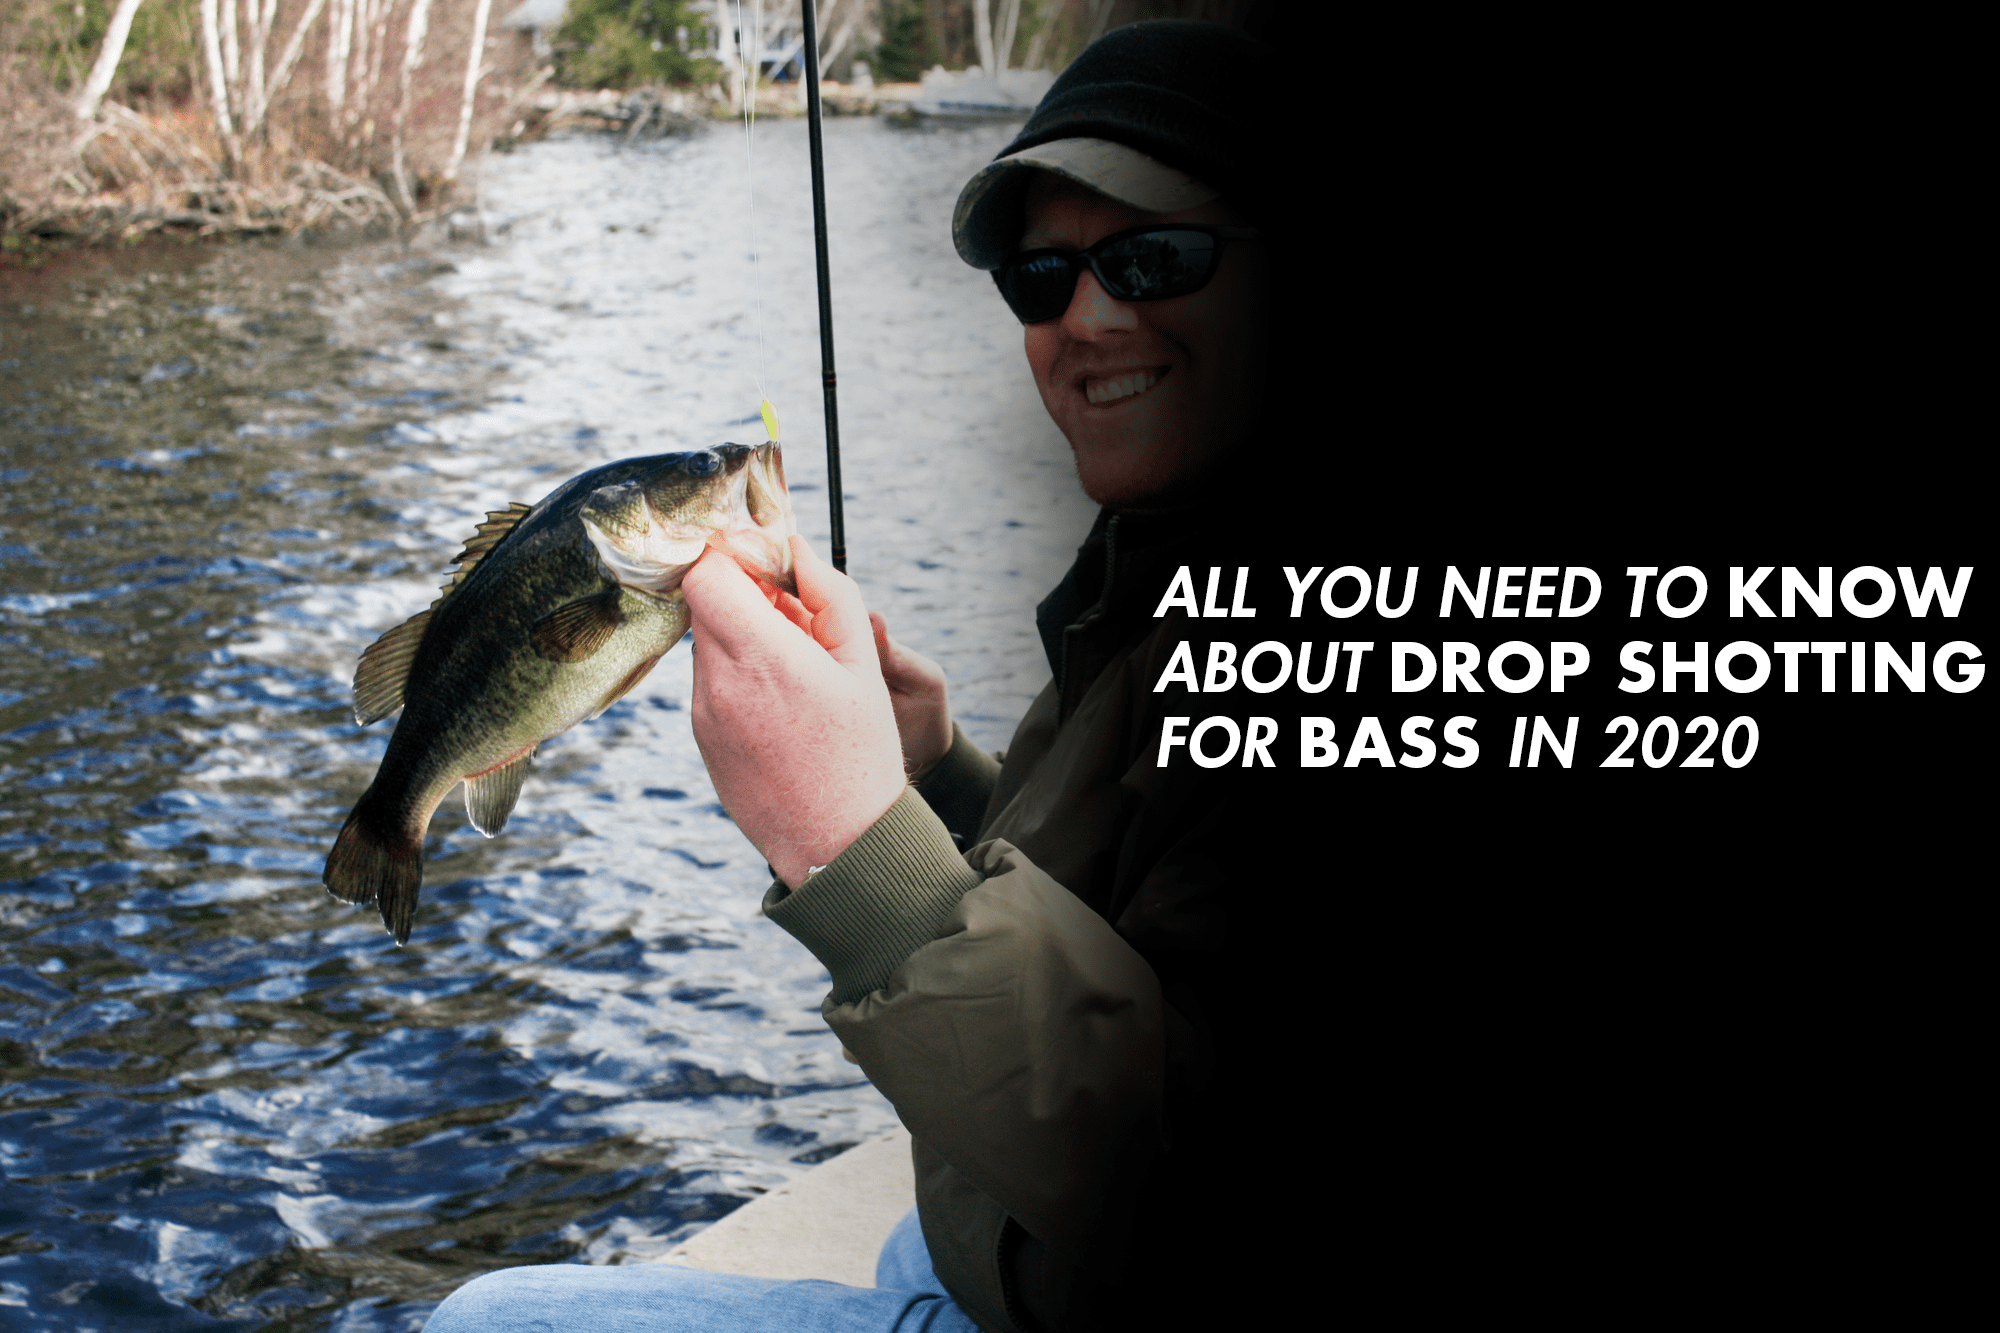 All You Need To Know About Drop Shotting for Bass in 2020